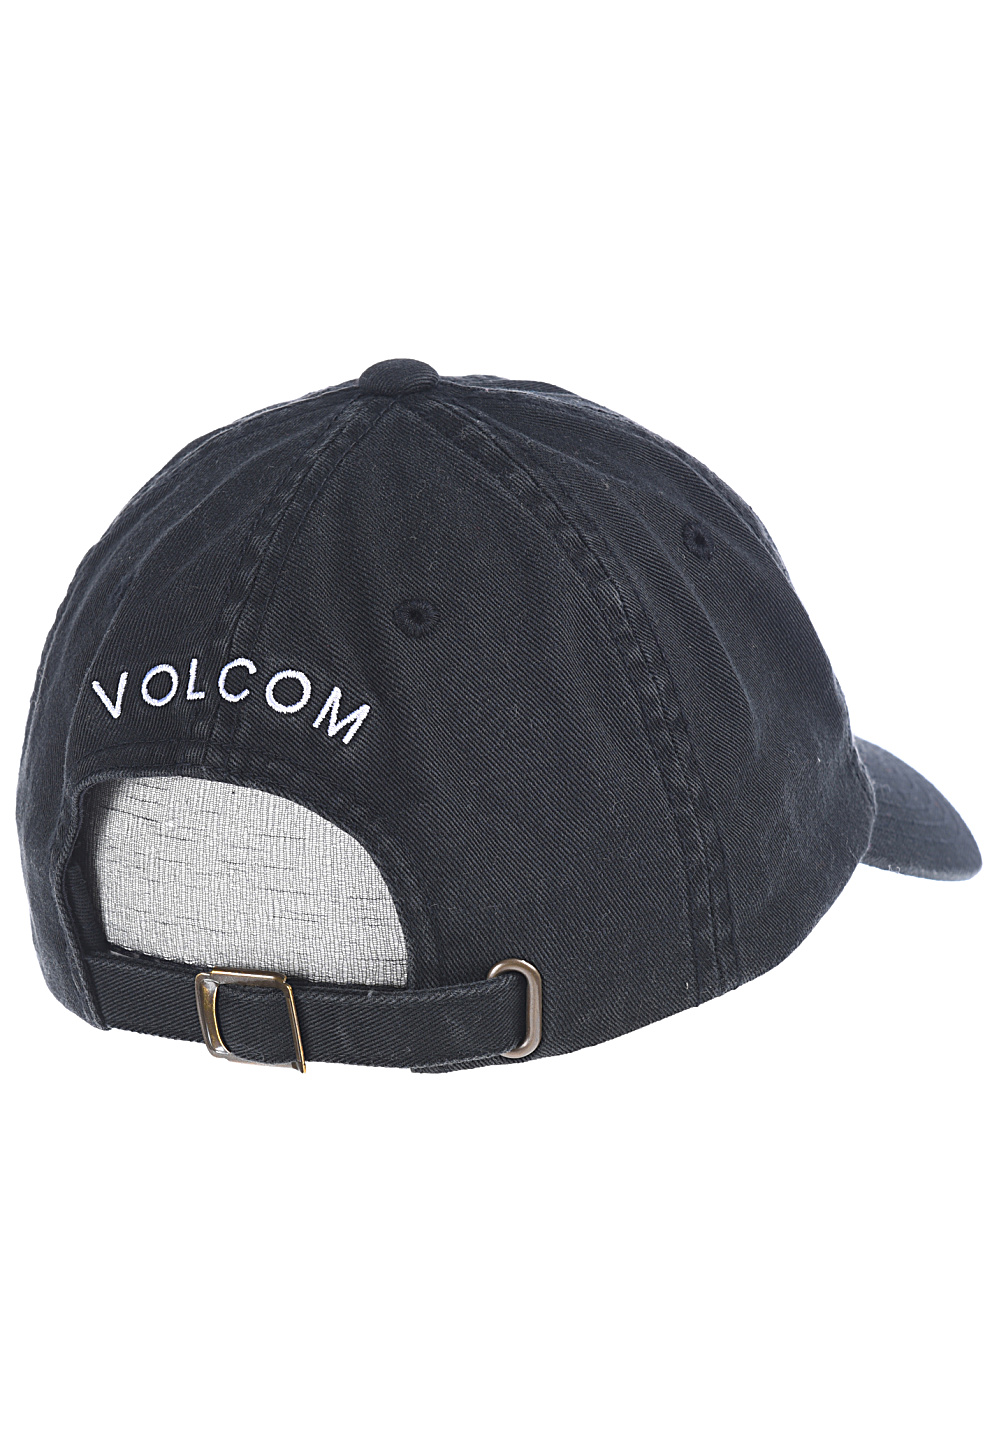 223226ff Volcom Good Mood Dad - Snapback Cap for Women - Black - Planet Sports